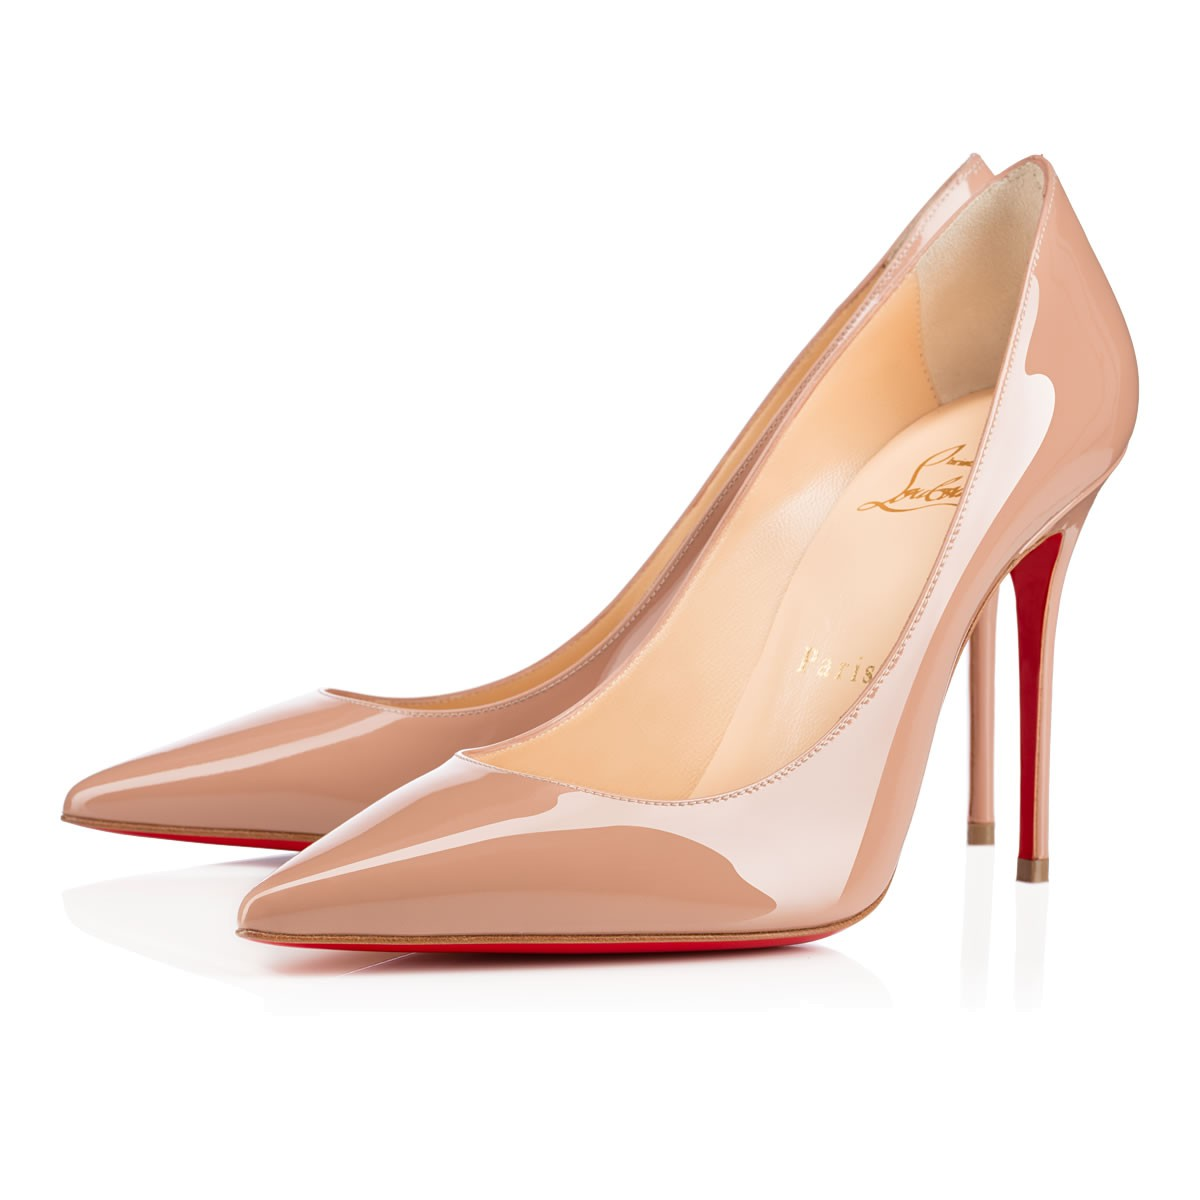 chaussures de sport 4c9f2 3eeab Kate 100 Nude Patent Leather - Women Shoes - Christian Louboutin